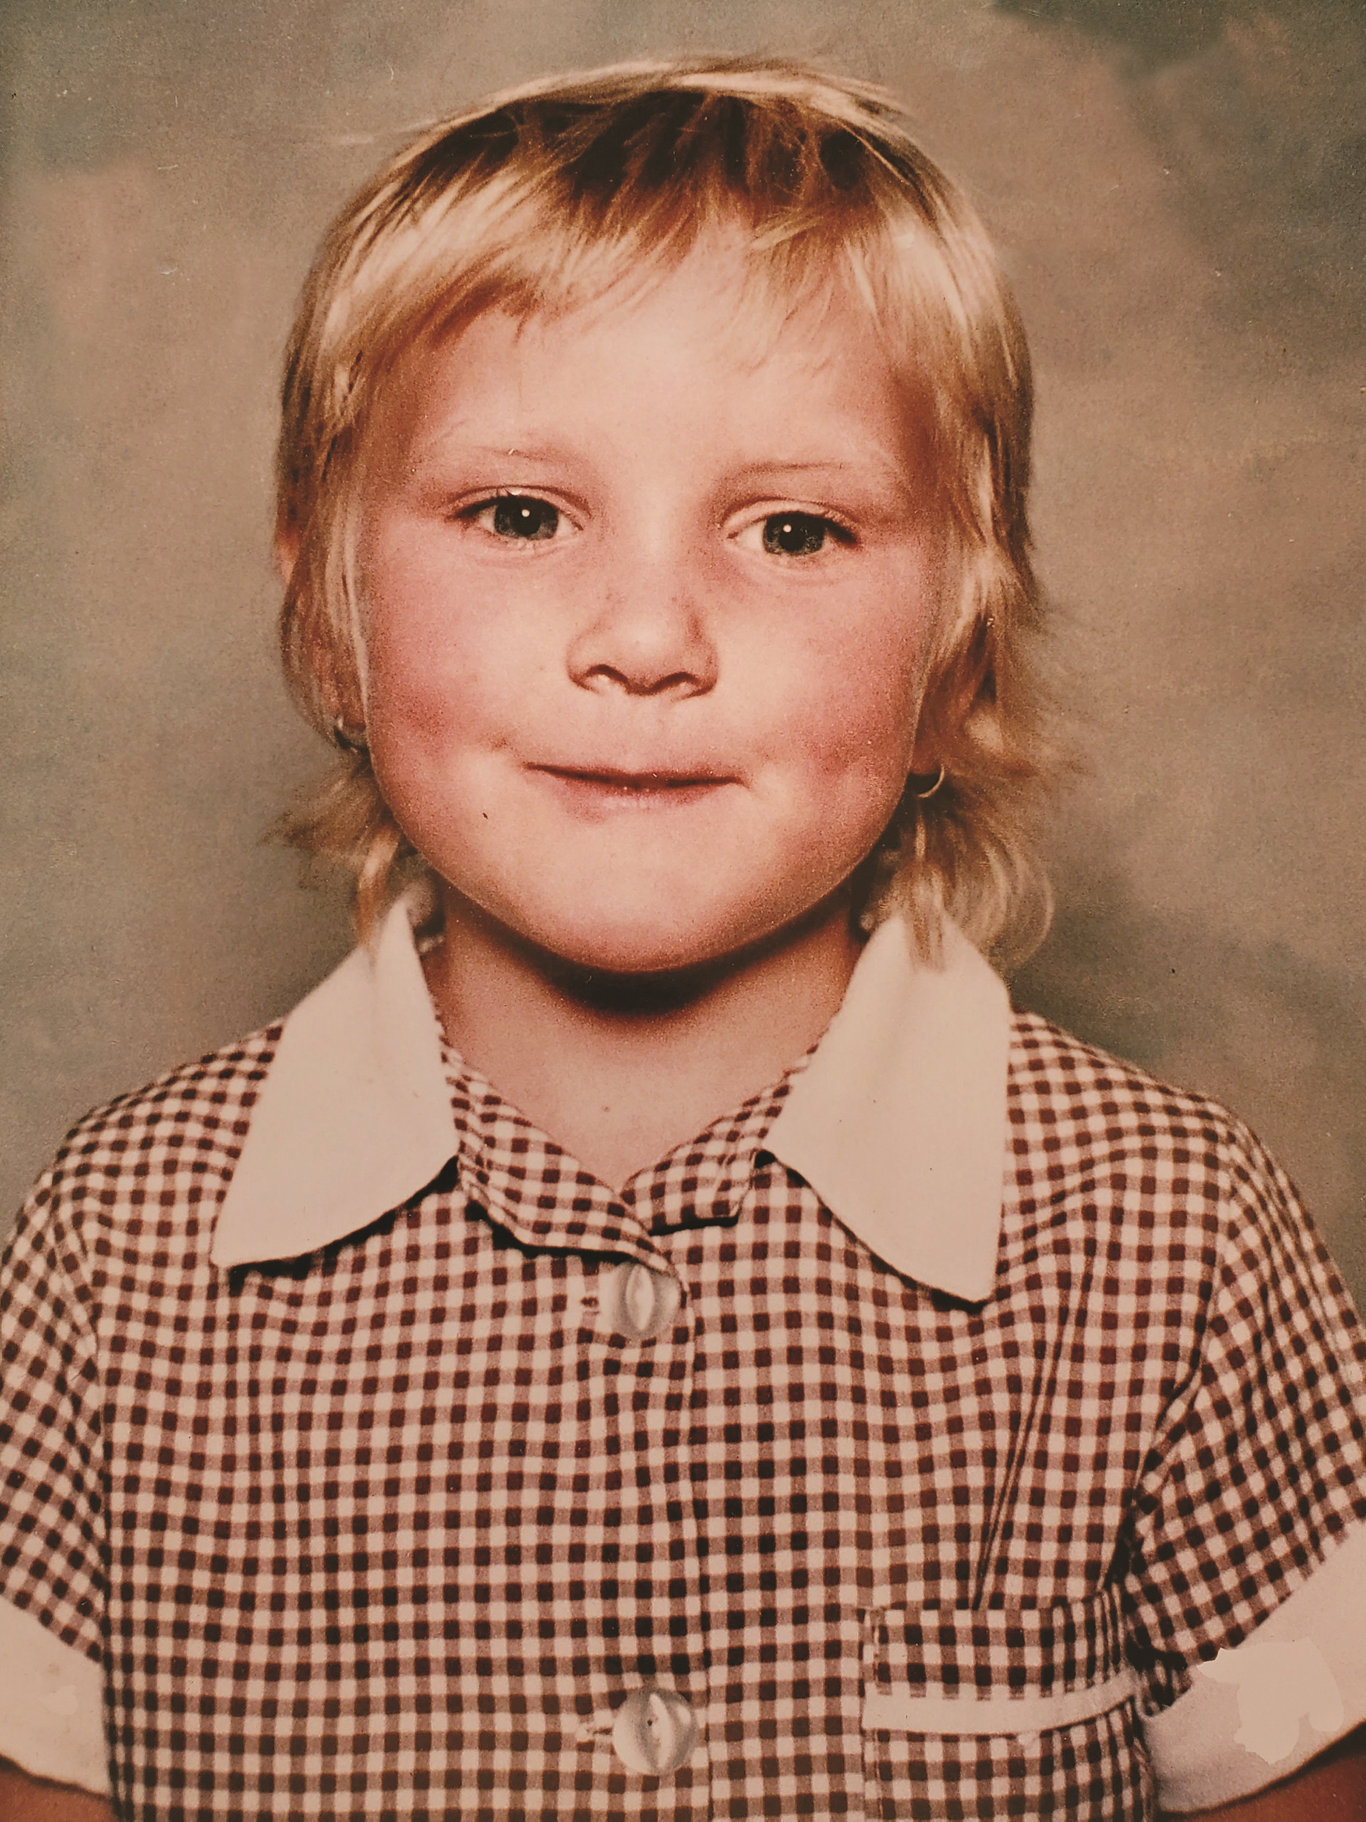 Stacey-Ann's first school photo. Just weeks before, the youngster had lovely long hair. She is pictured here with the haircut she gave herself the day before she started school. It is a memory that makes her mum Janet smile.